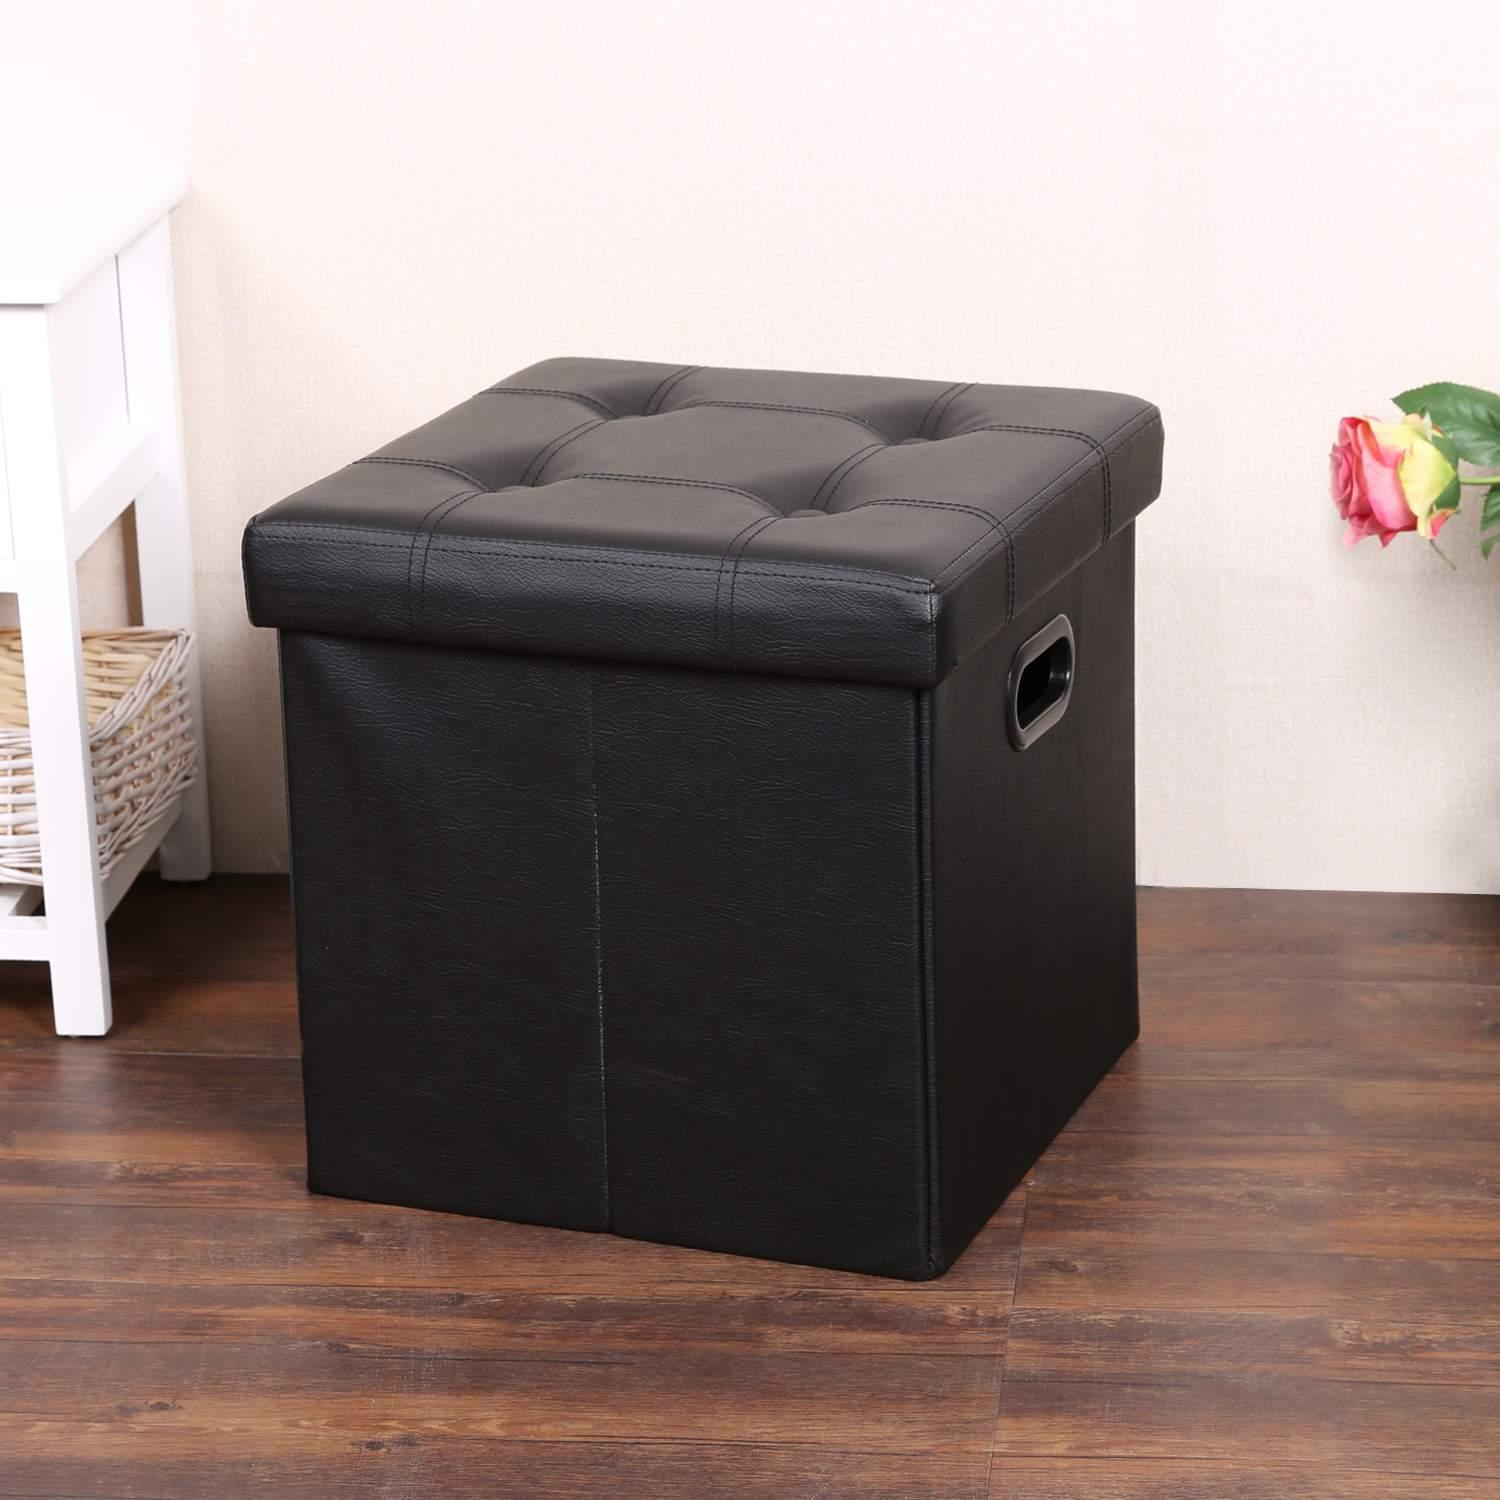 Foldable Storage Ottoman, Cube Foot Stool, Seat, Coffee Table, Storage Chest